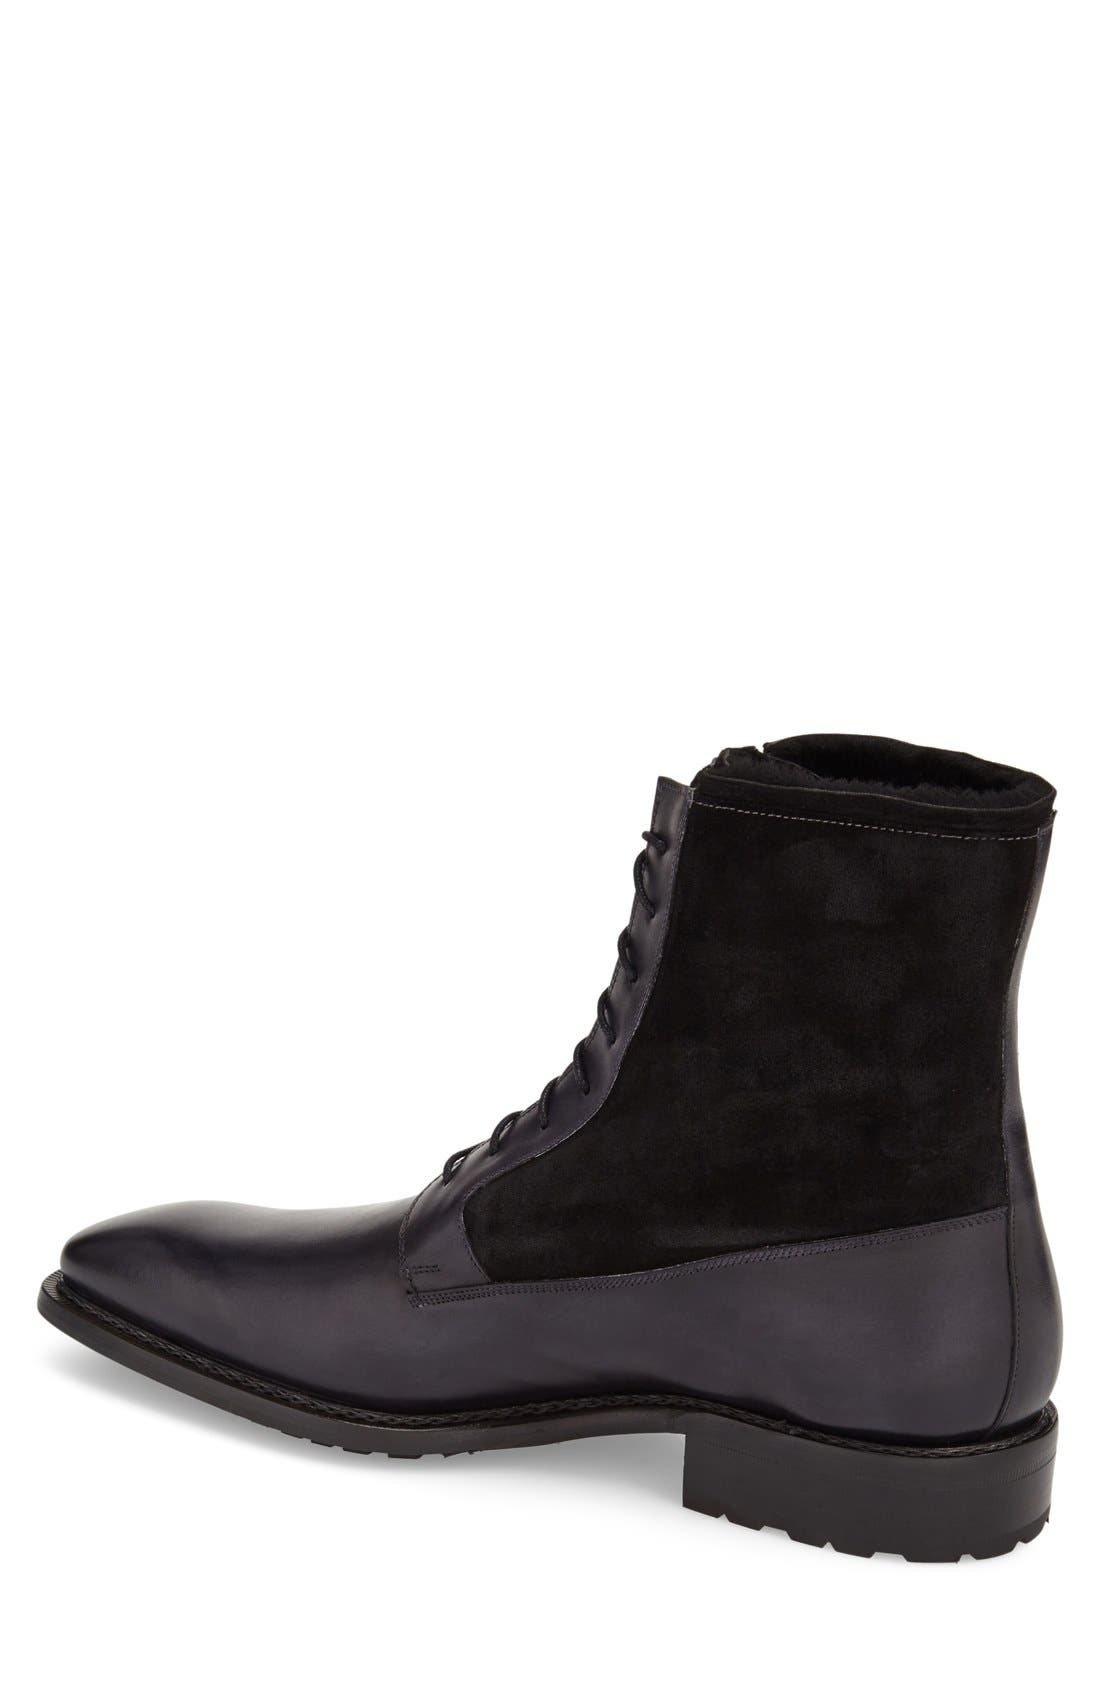 'Luzern' Genuine Shearling Boot,                             Alternate thumbnail 4, color,